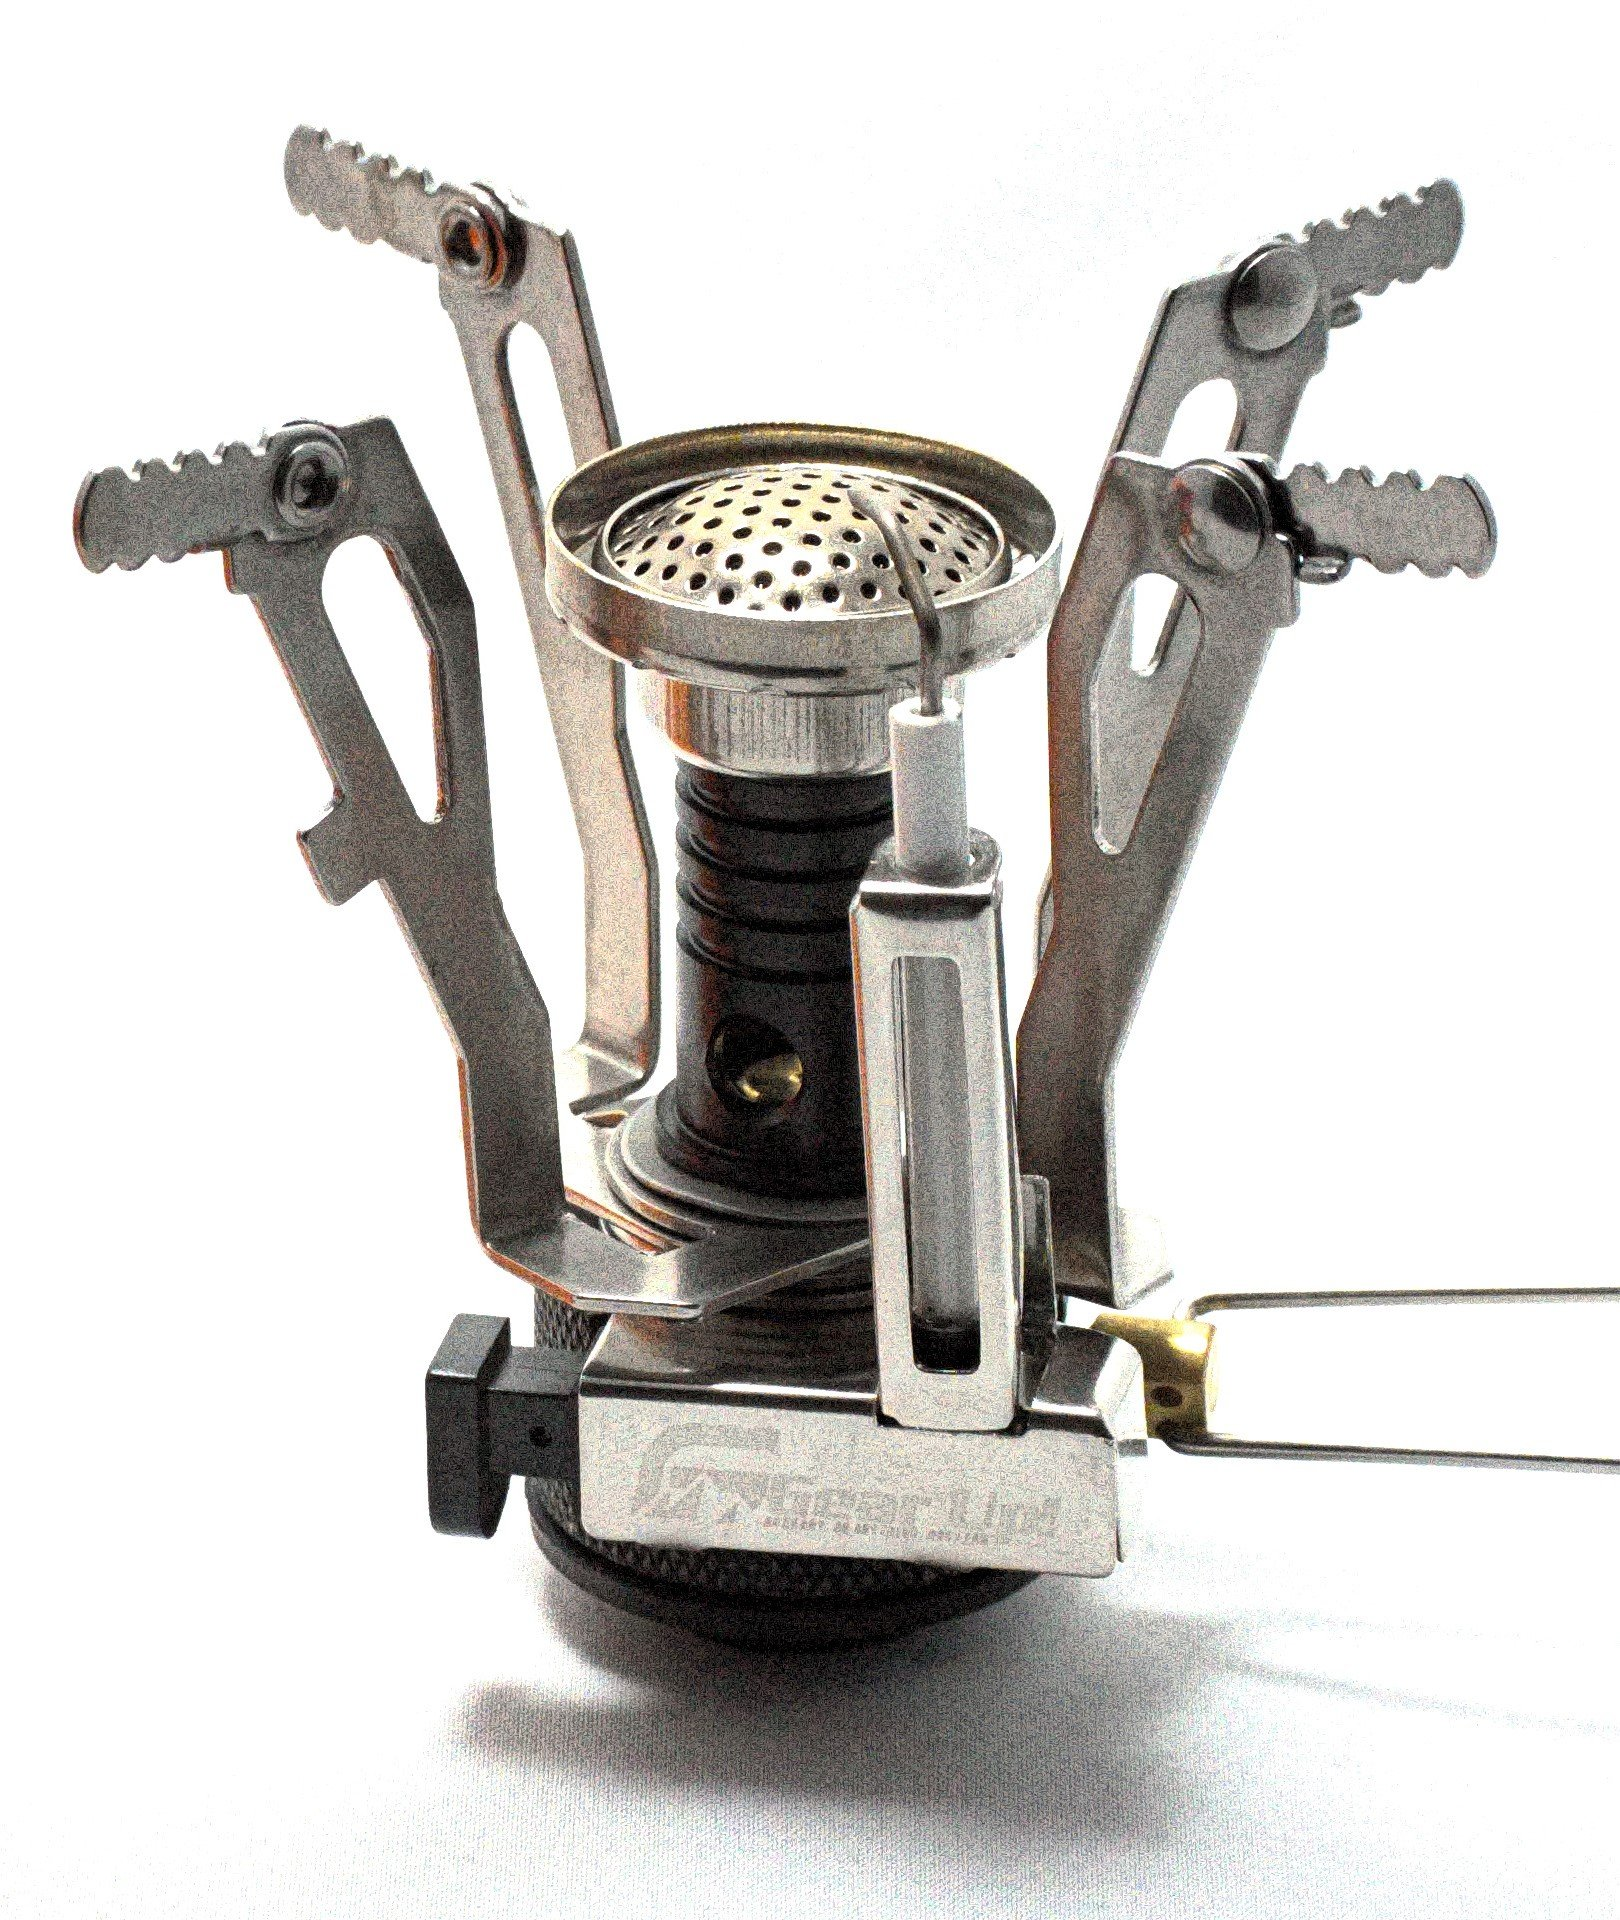 Gear Up! Mini Camp Stove, Portable Cooker For Camping, Hiking, Backpacking & Outdoor Activities. Bonus Gear Up Credit Card Knife In Box.